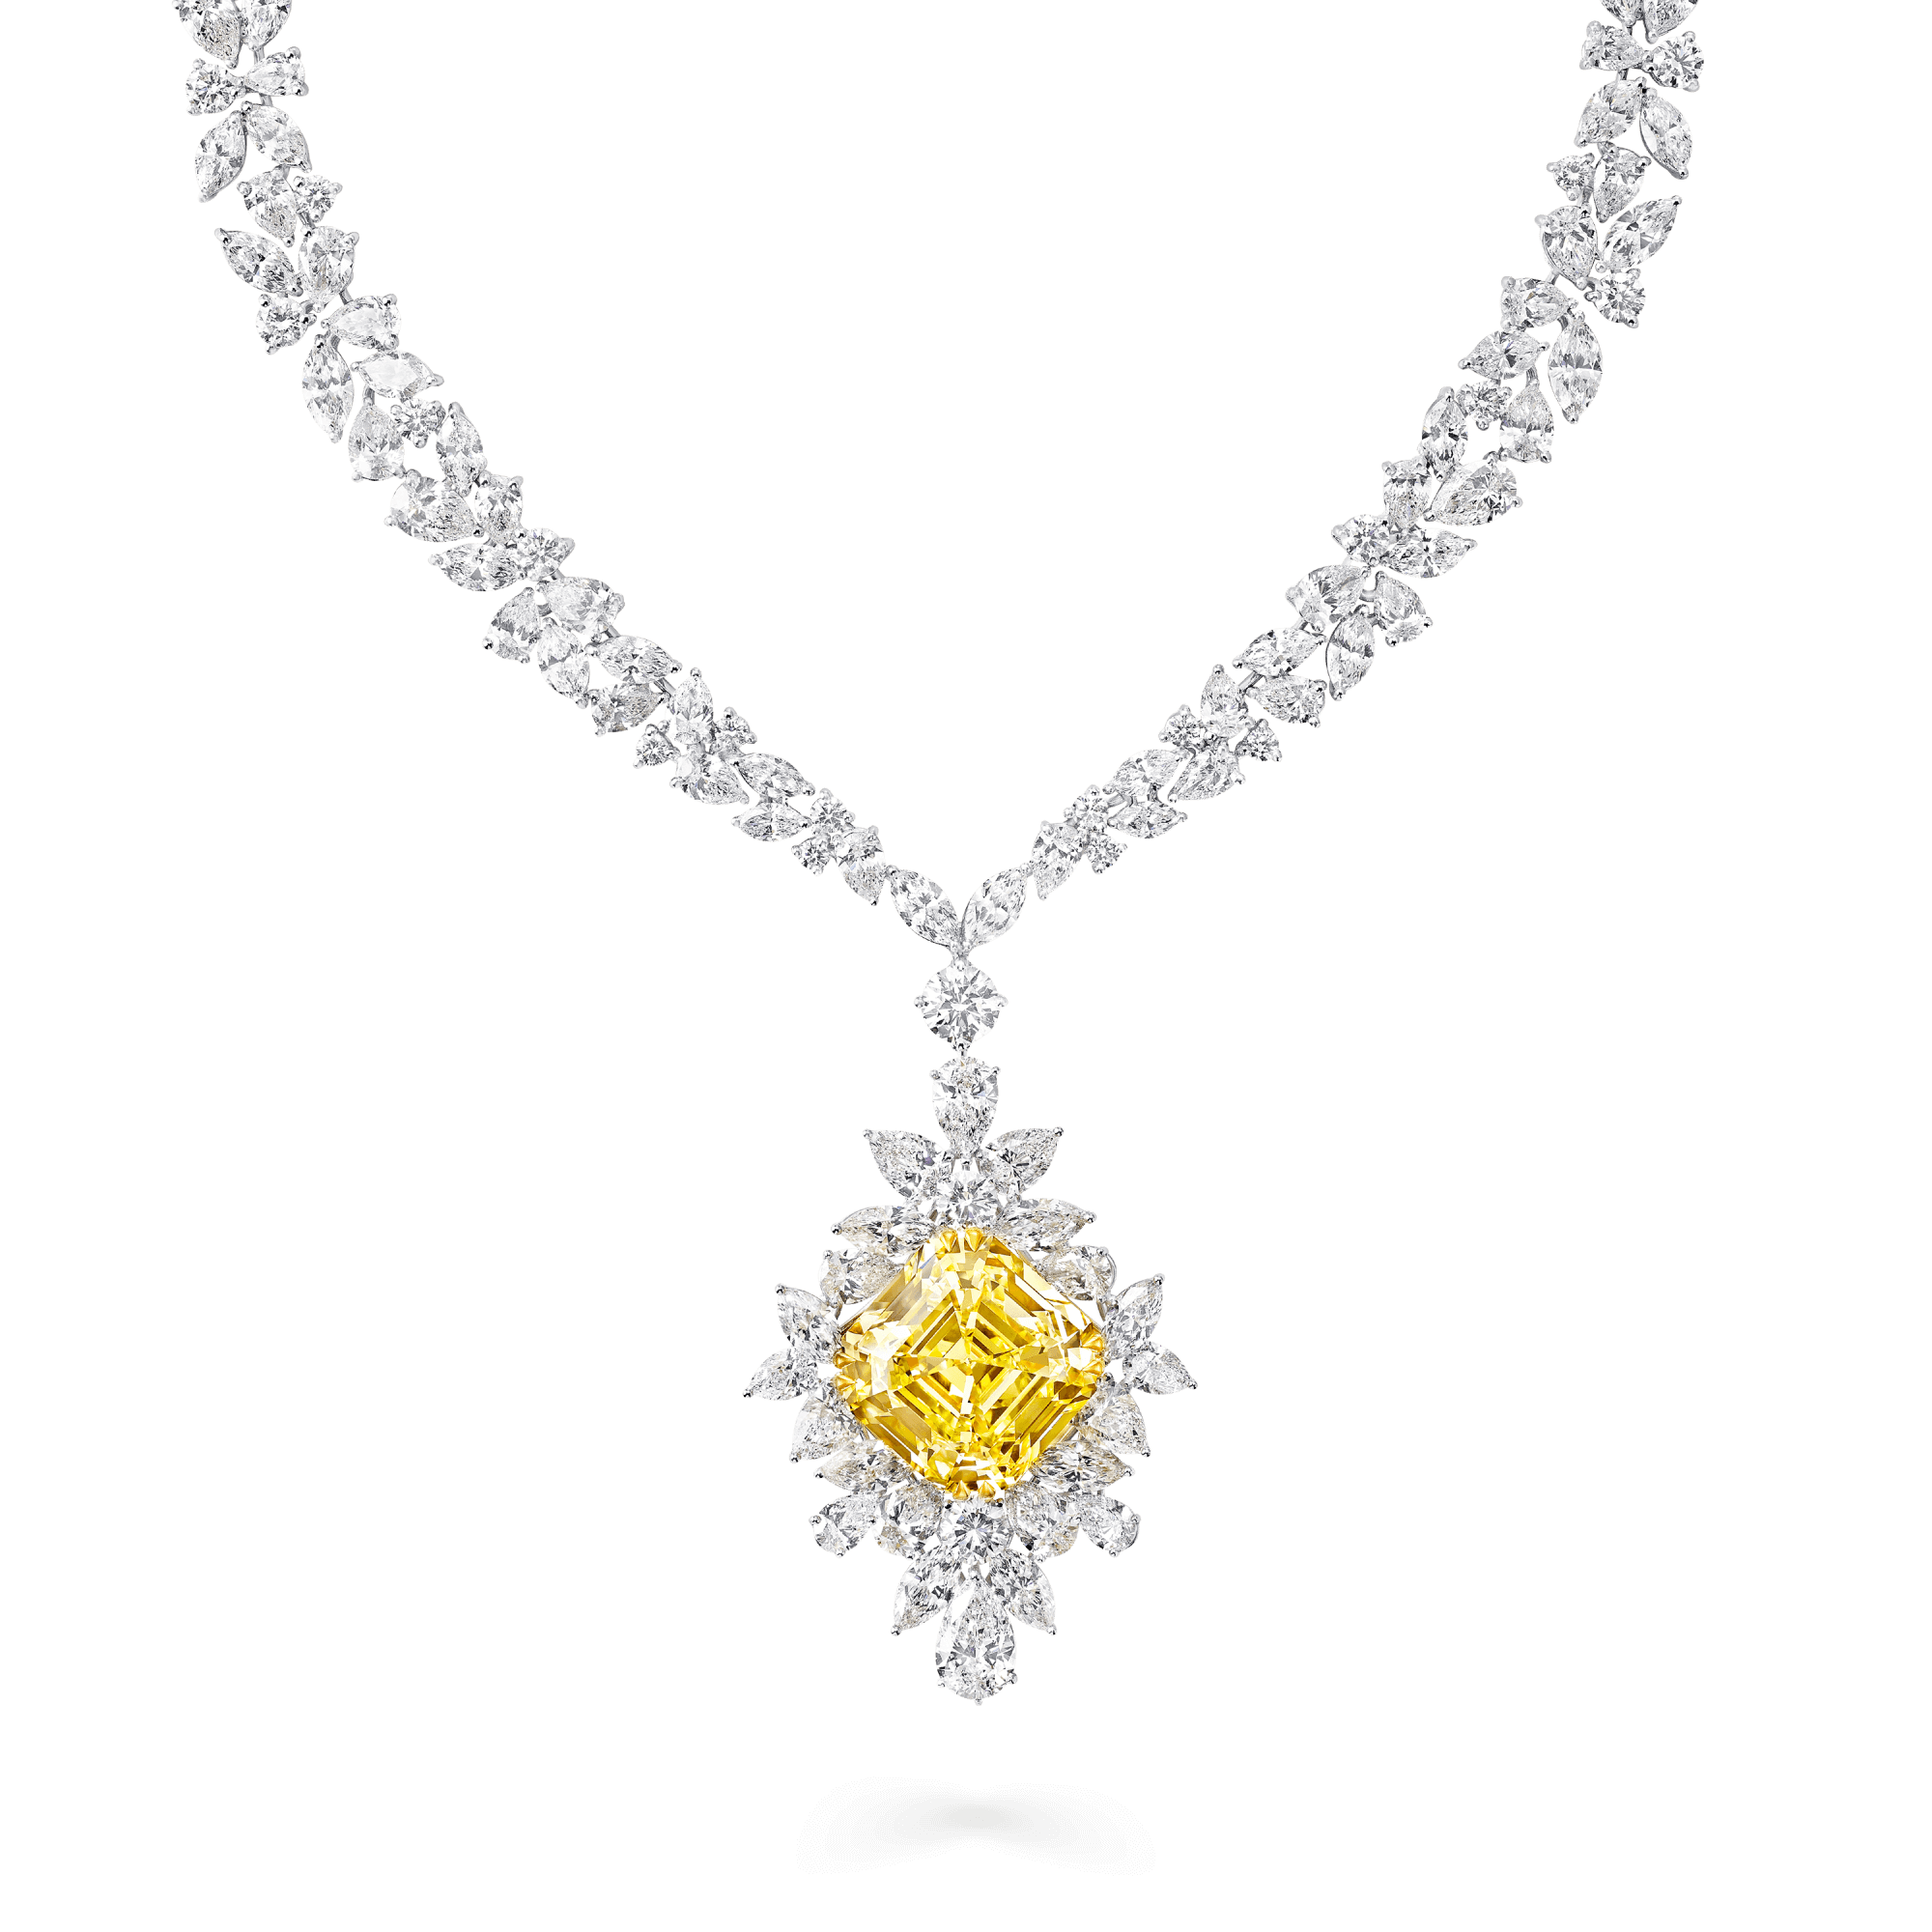 Yellow Diamond Jewellery One Of A Kind High Jewellery Graff Yellow Diamond Jewelry Yellow Diamond Earring White Diamond Necklace